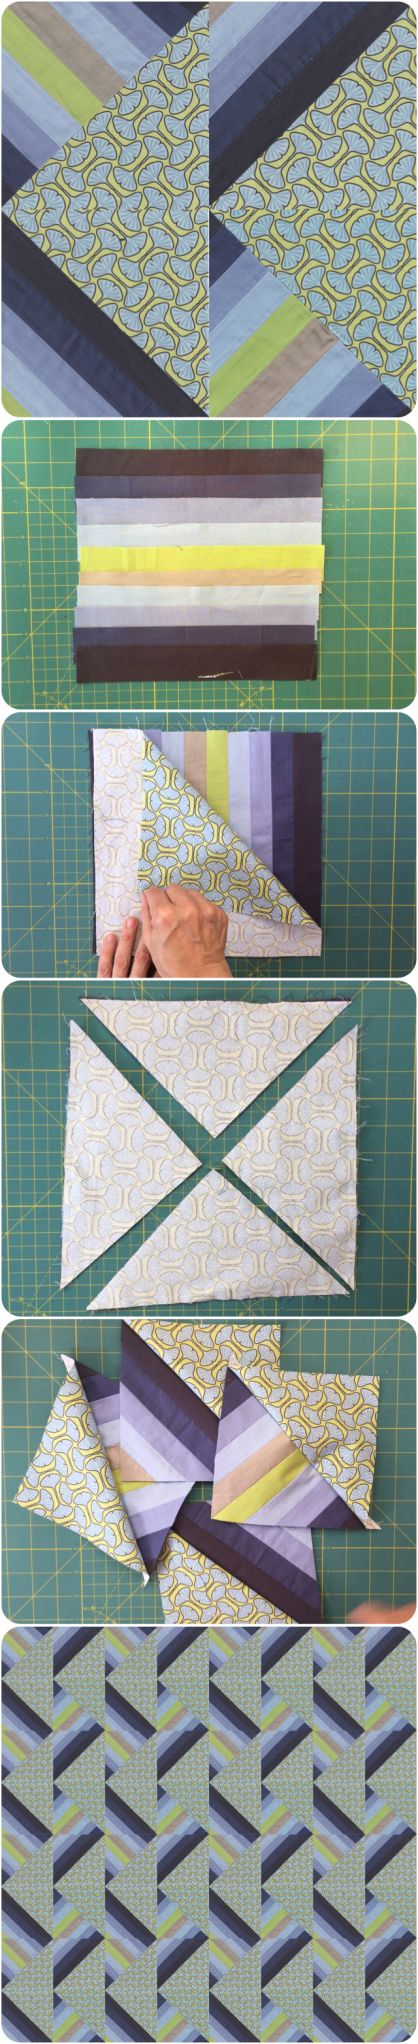 Half and Half Square Triangle quilt block